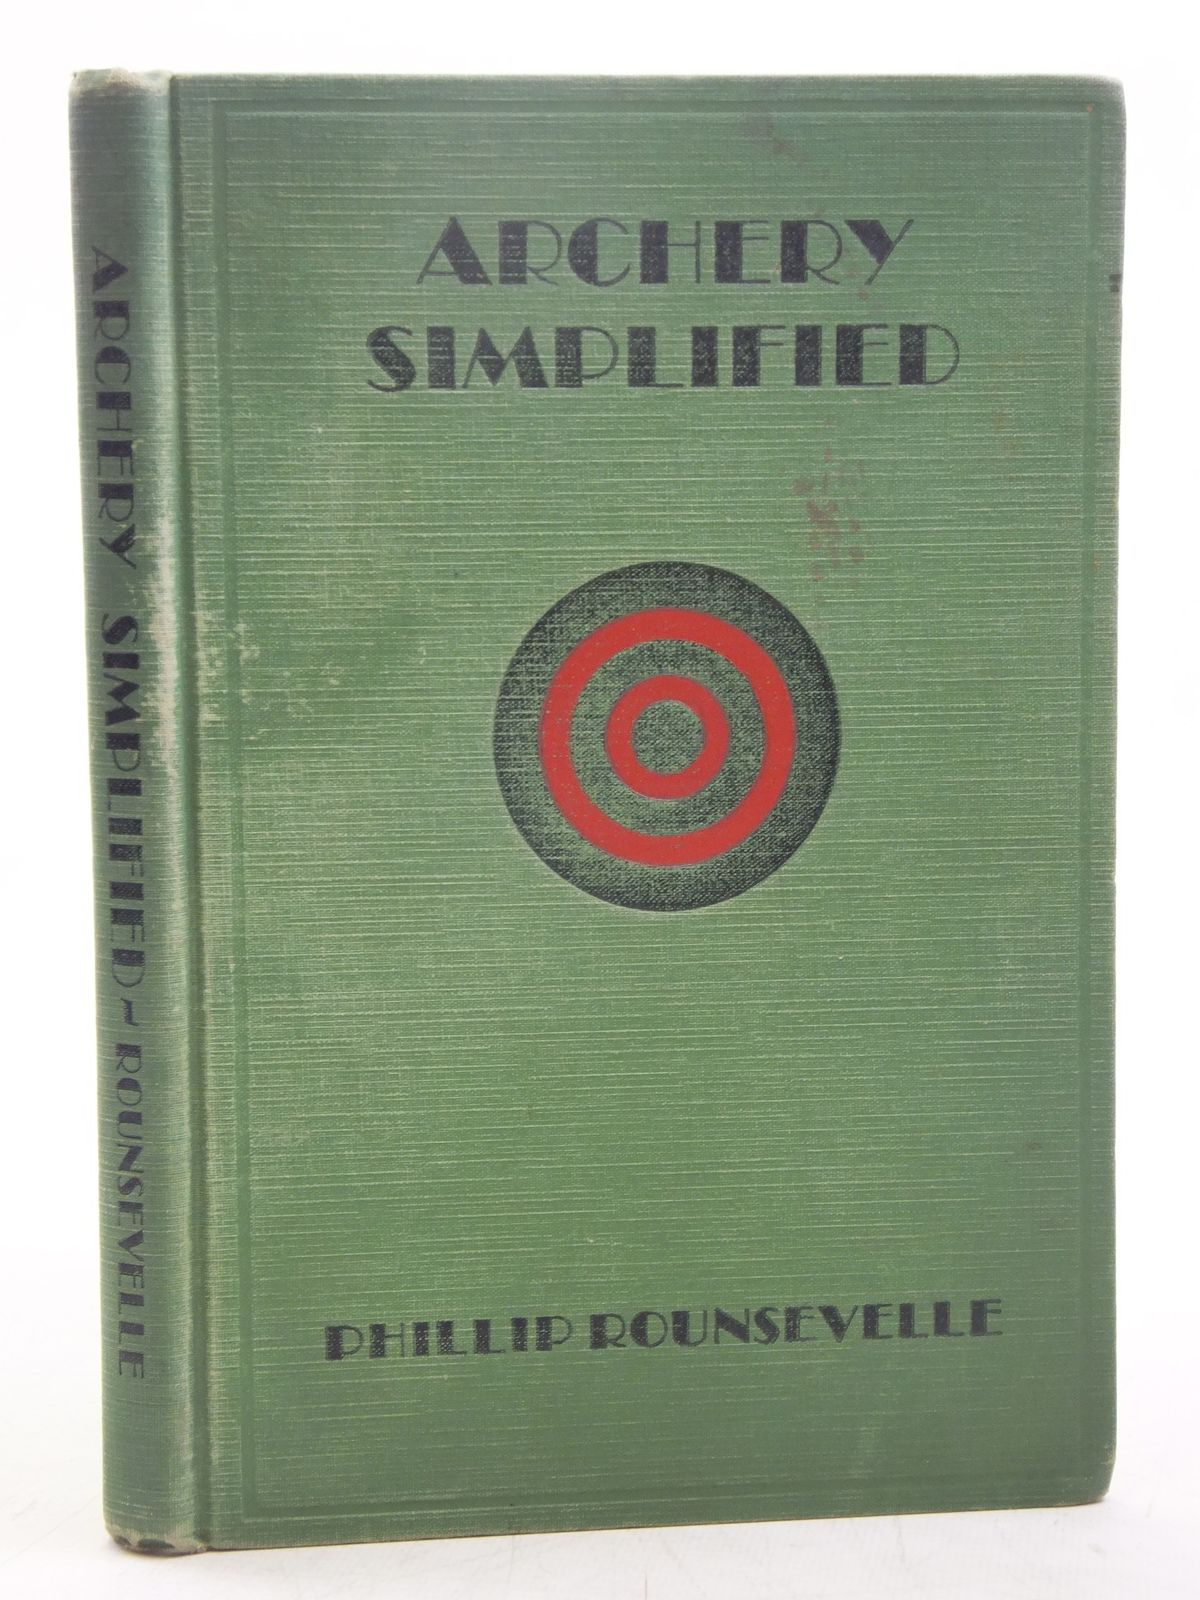 Photo of ARCHERY SIMPLIFIED written by Rounsevelle, Phillip illustrated by Blackburn, Hubert E. published by The Library Press Ltd. (STOCK CODE: 2118754)  for sale by Stella & Rose's Books